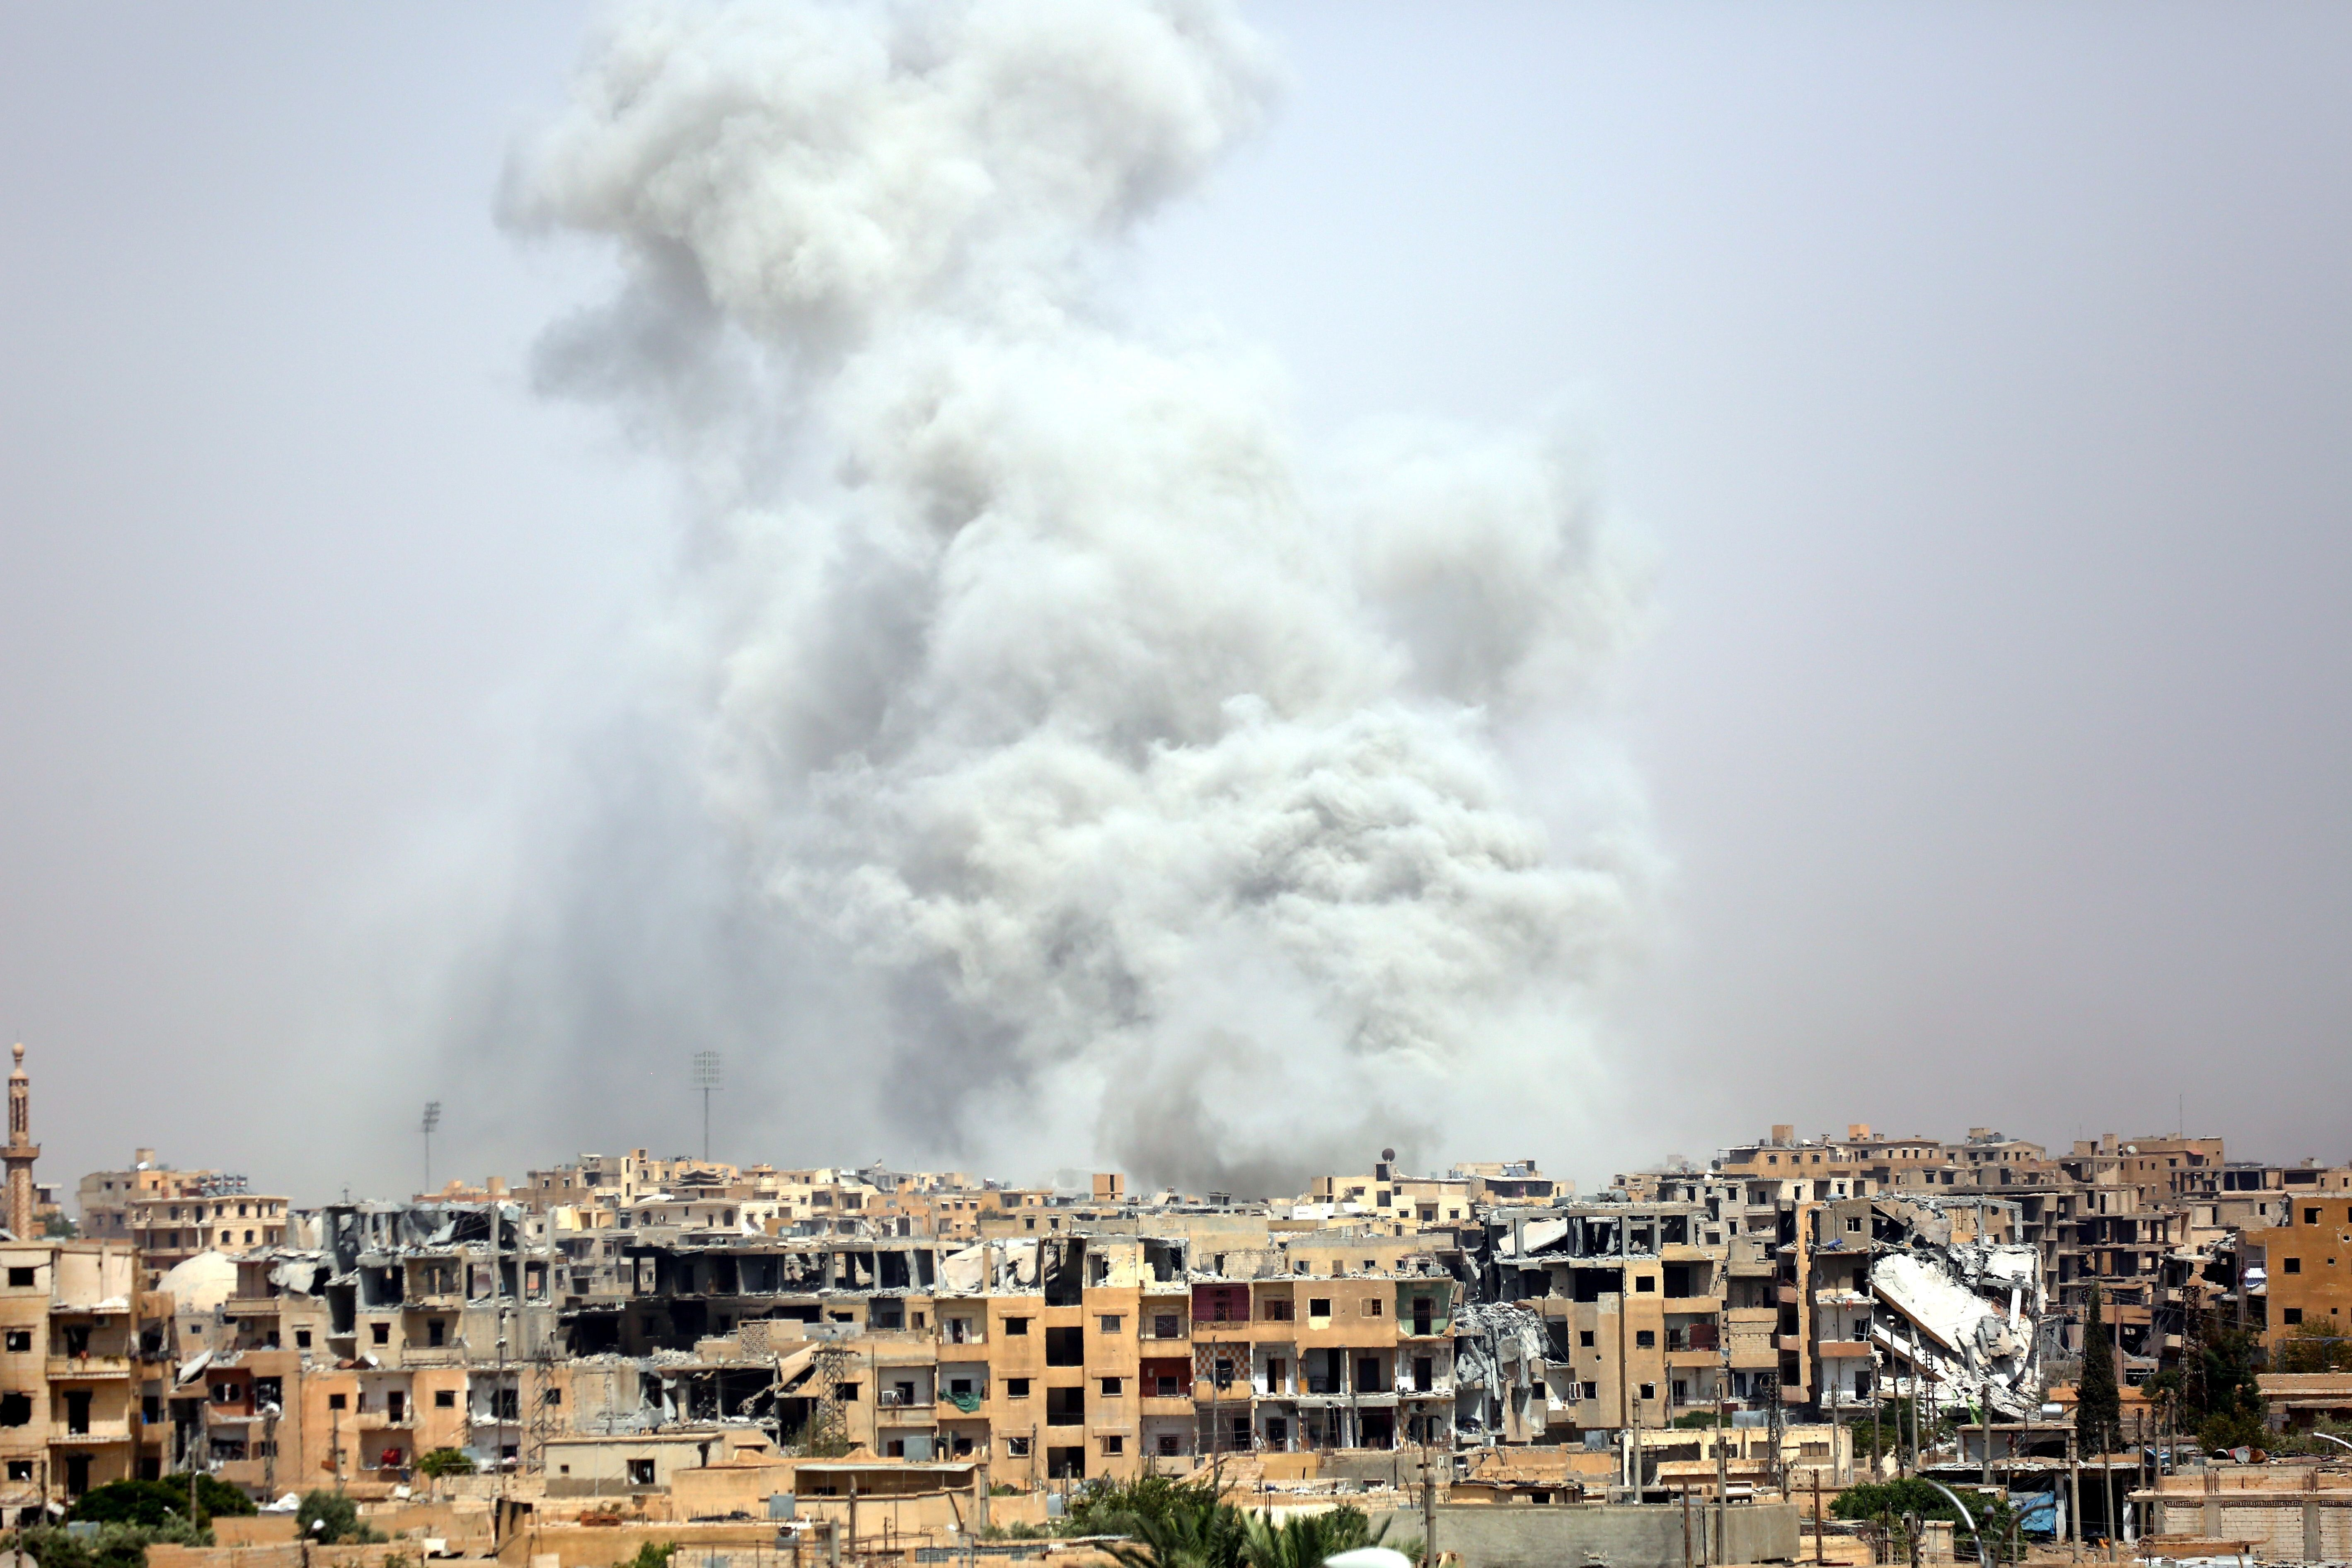 """TOPSHOT - Smoke billows out from Raqa following a coalition air strike on July 28, 2017. The Syrian Democratic Forces, a US-backed Kurdish-Arab alliance, has ousted Islamic State (IS) group jihadists from half of their Syrian bastion Raqa, where the SDF have been fighting for several months to capture the northern city which has become infamous as the Syrian heart of IS's so-called """"caliphate."""" / AFP PHOTO / DELIL SOULEIMAN        (Photo credit should read DELIL SOULEIMAN/AFP/Getty Images)"""